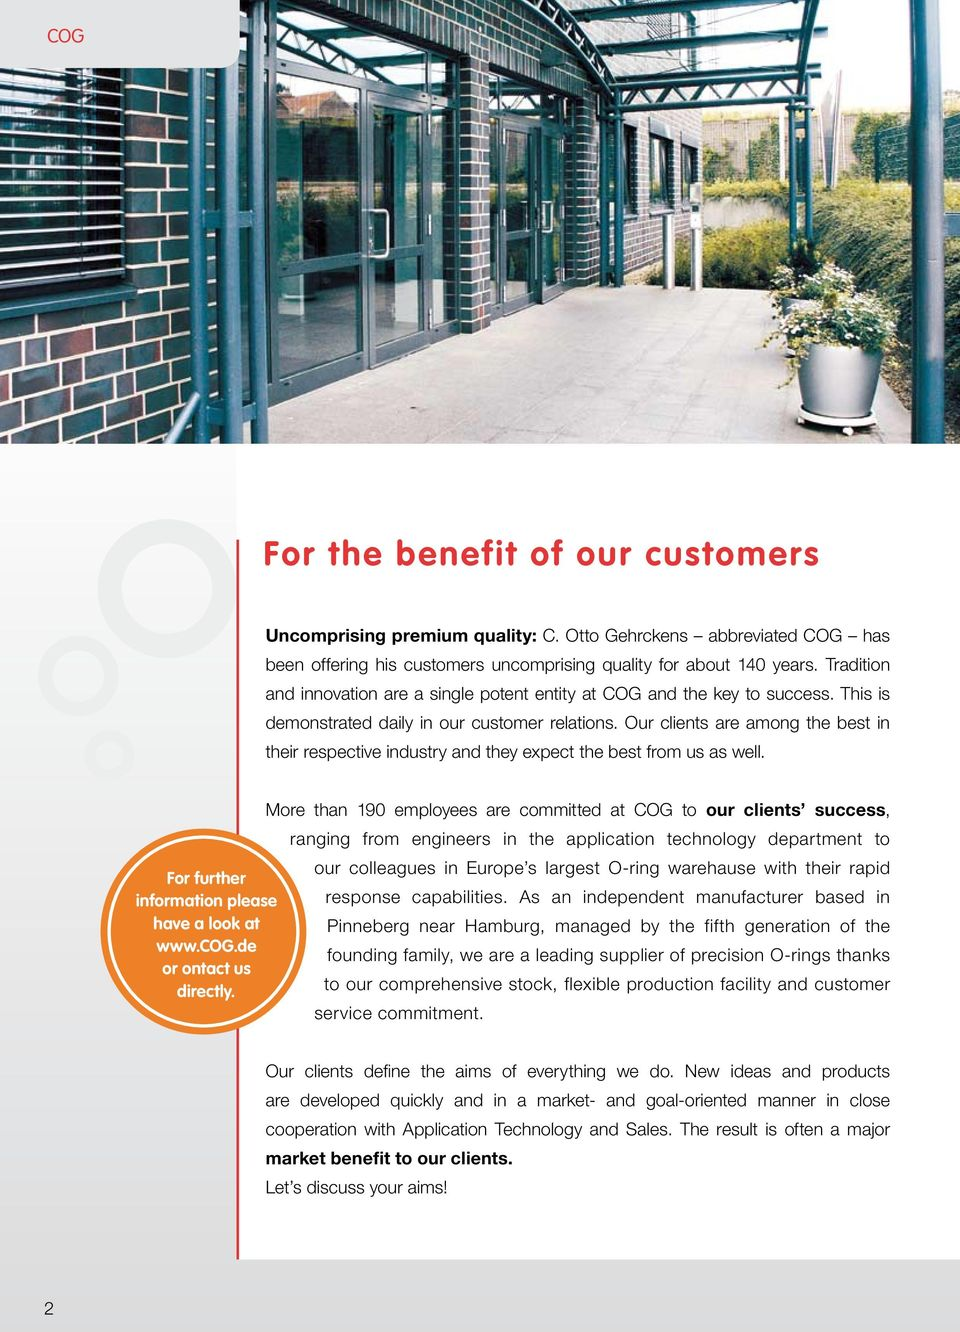 Our clients are among the best in their respective industry and they expect the best from us as well. For further information please have a look at www.cog.de or ontact us directly.